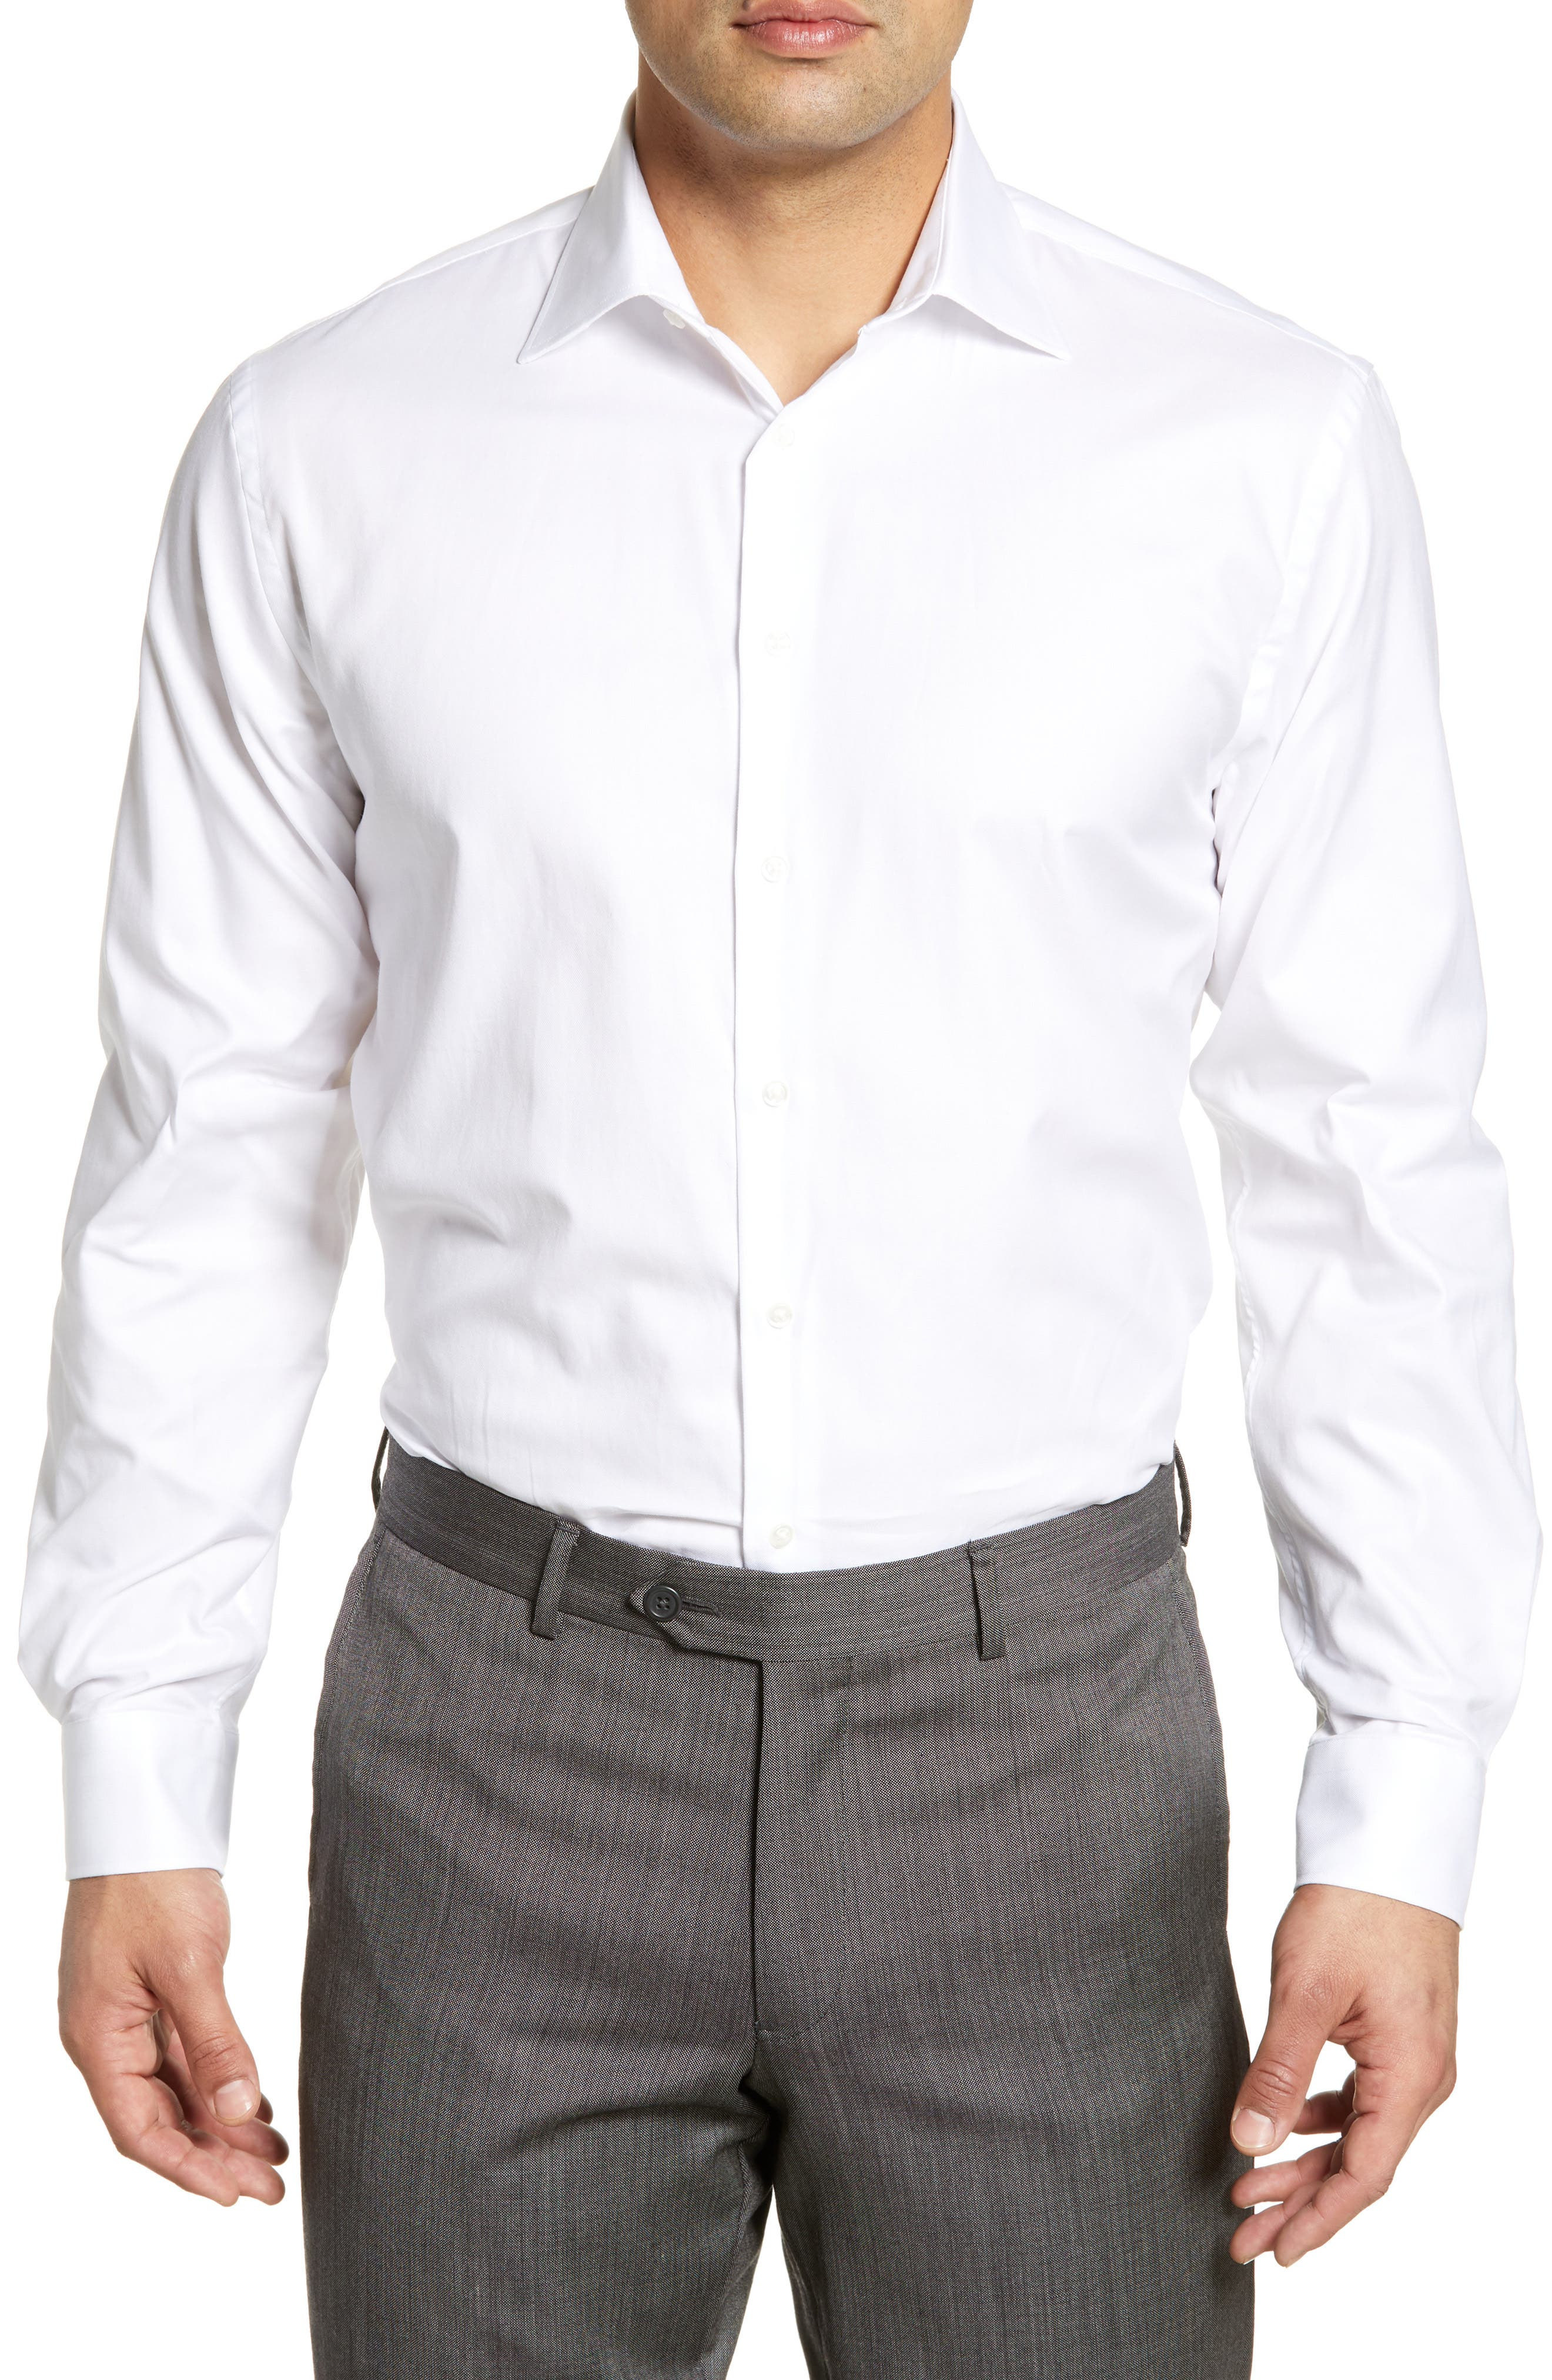 A fine twill texture marks a charming dress shirt featuring a smart spread collar and rounded, adjustable button cuffs. Style Name: Nordstrom Men\'s Shop Traditional Fit Solid Dress Shirt. Style Number: 5672203. Available in stores.